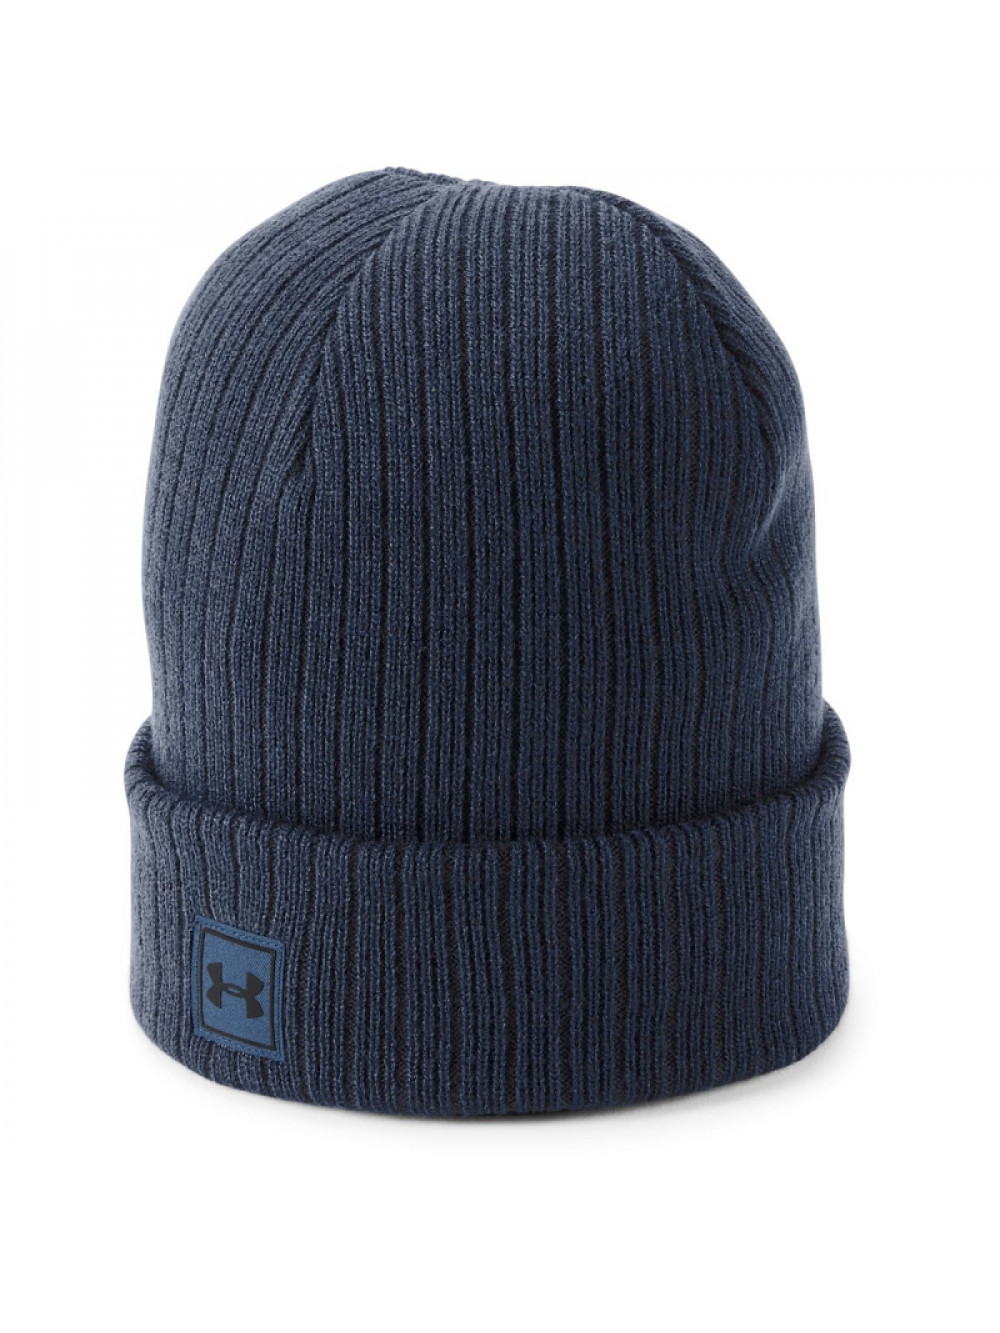 Herren Mütze Under Armour Men's Truckstop Beanie Blau